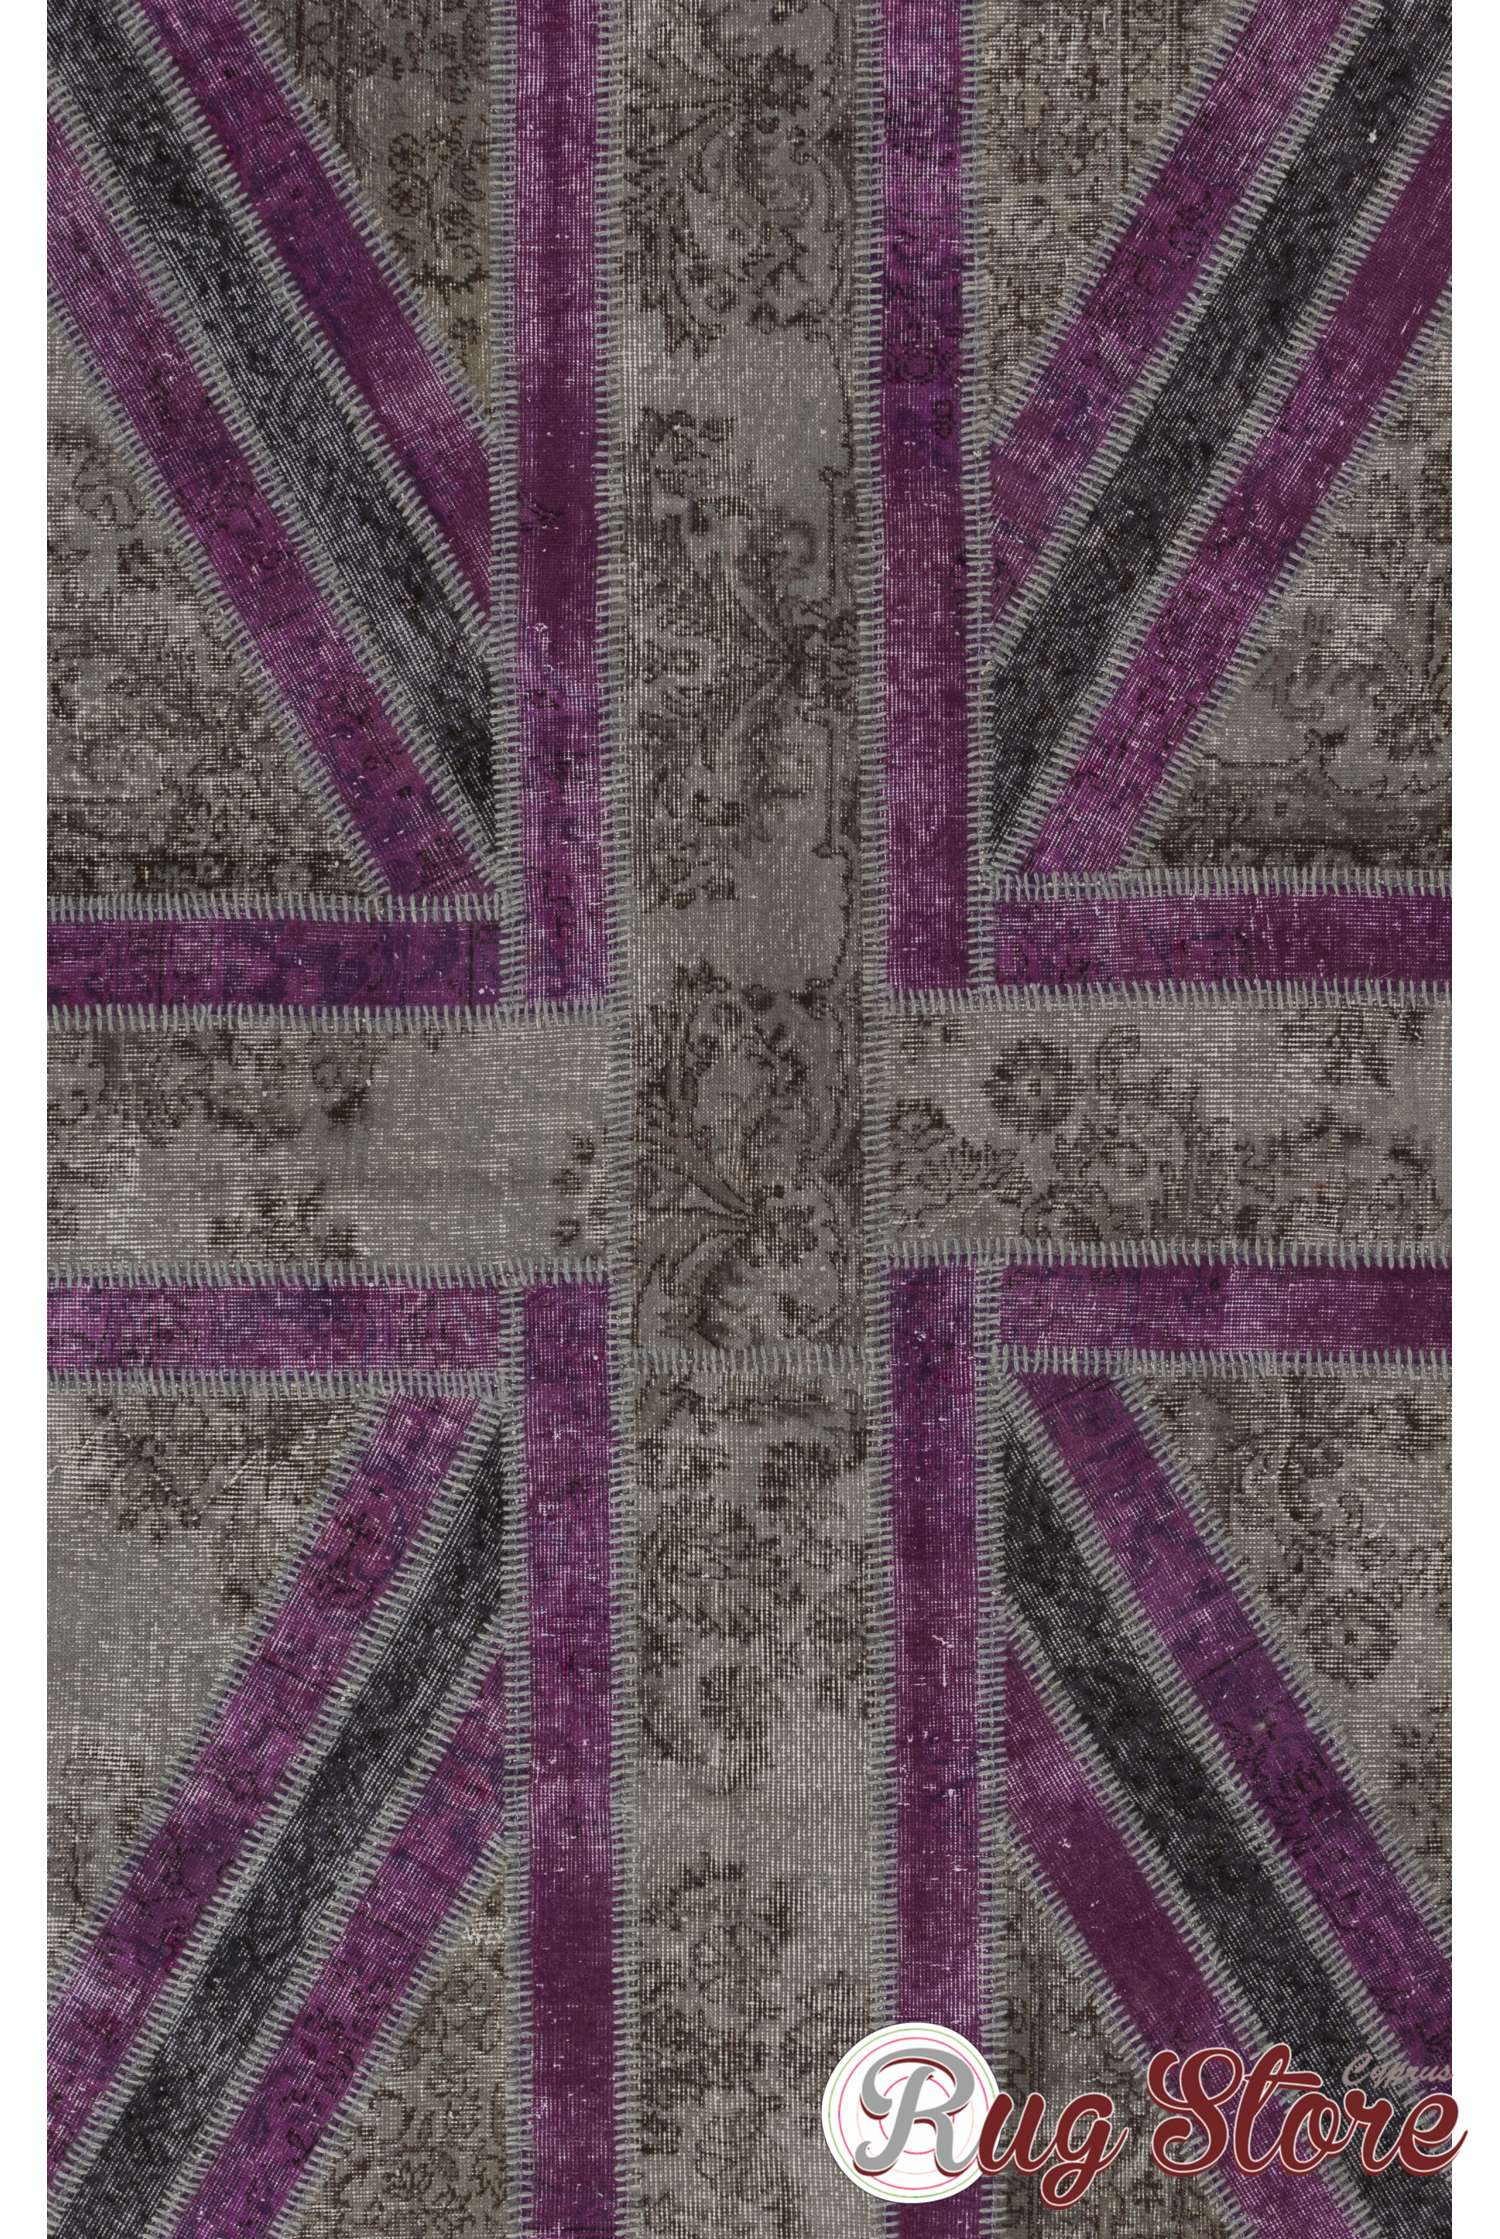 152x245 Cm Gray And Purple Color Union Jack British Flag